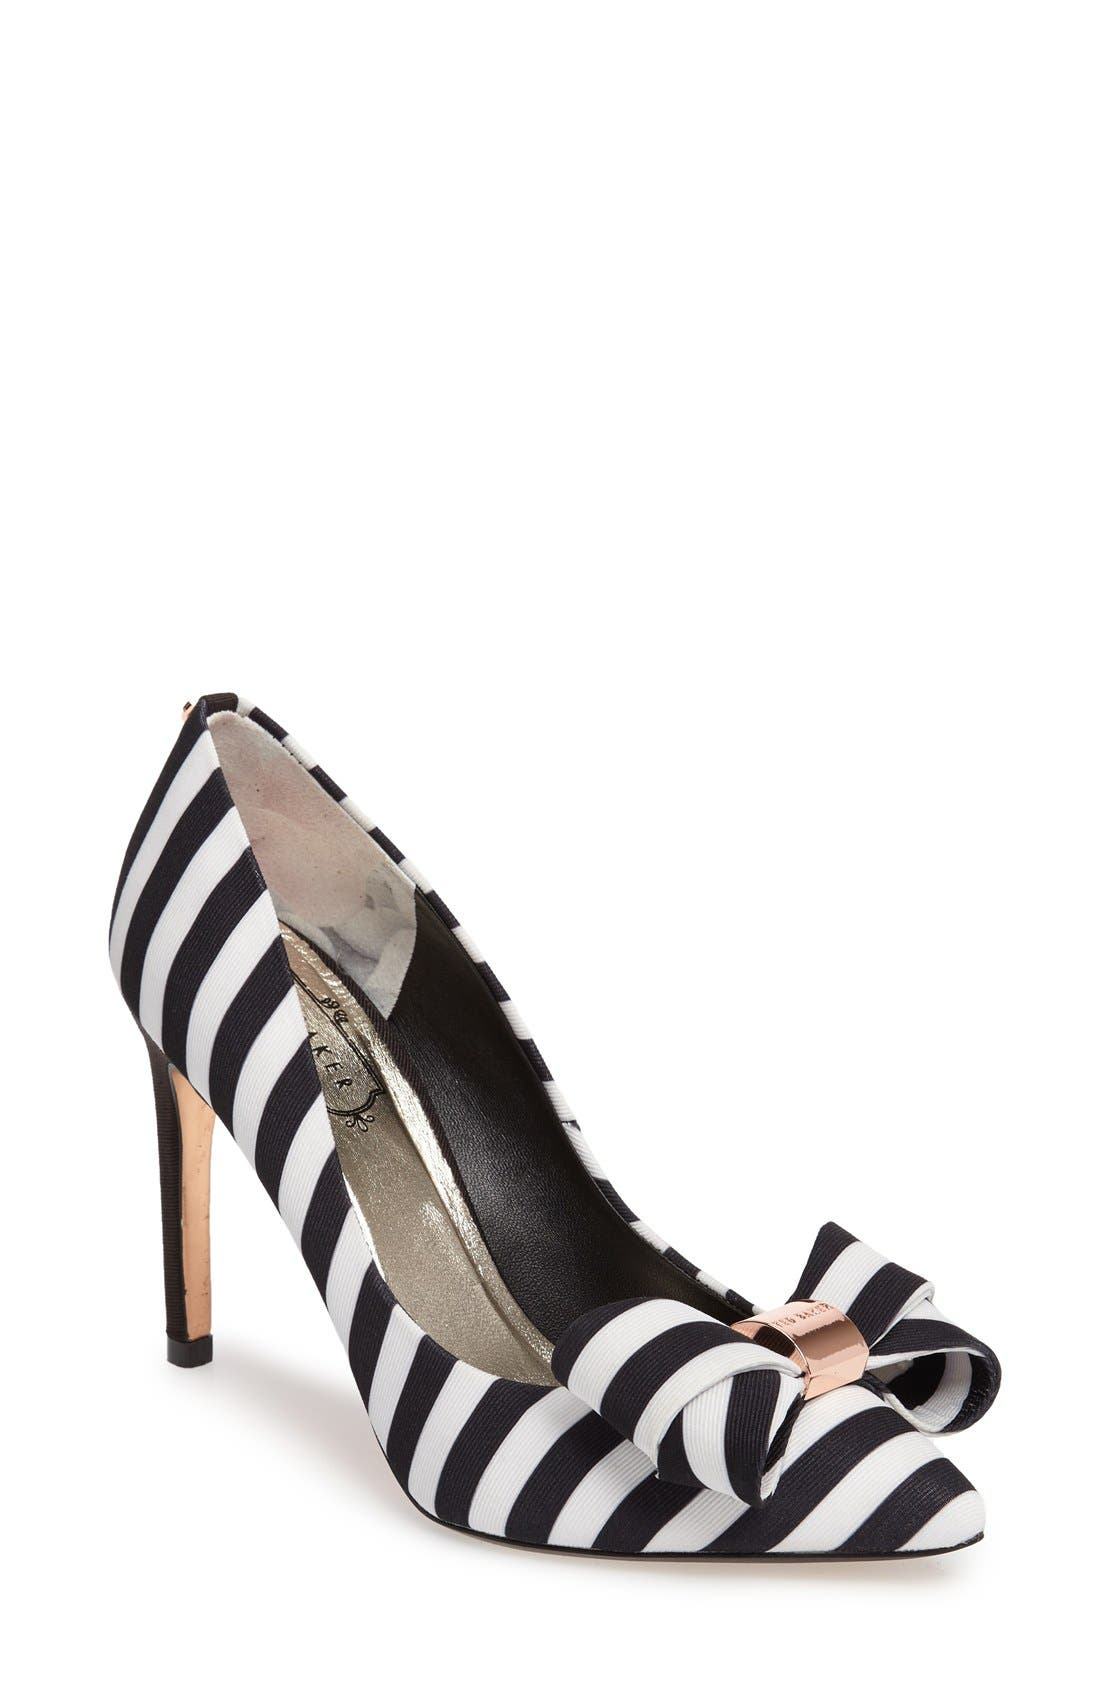 Main Image - Ted Baker London 'Ichlibi' Bow Pump (Women)